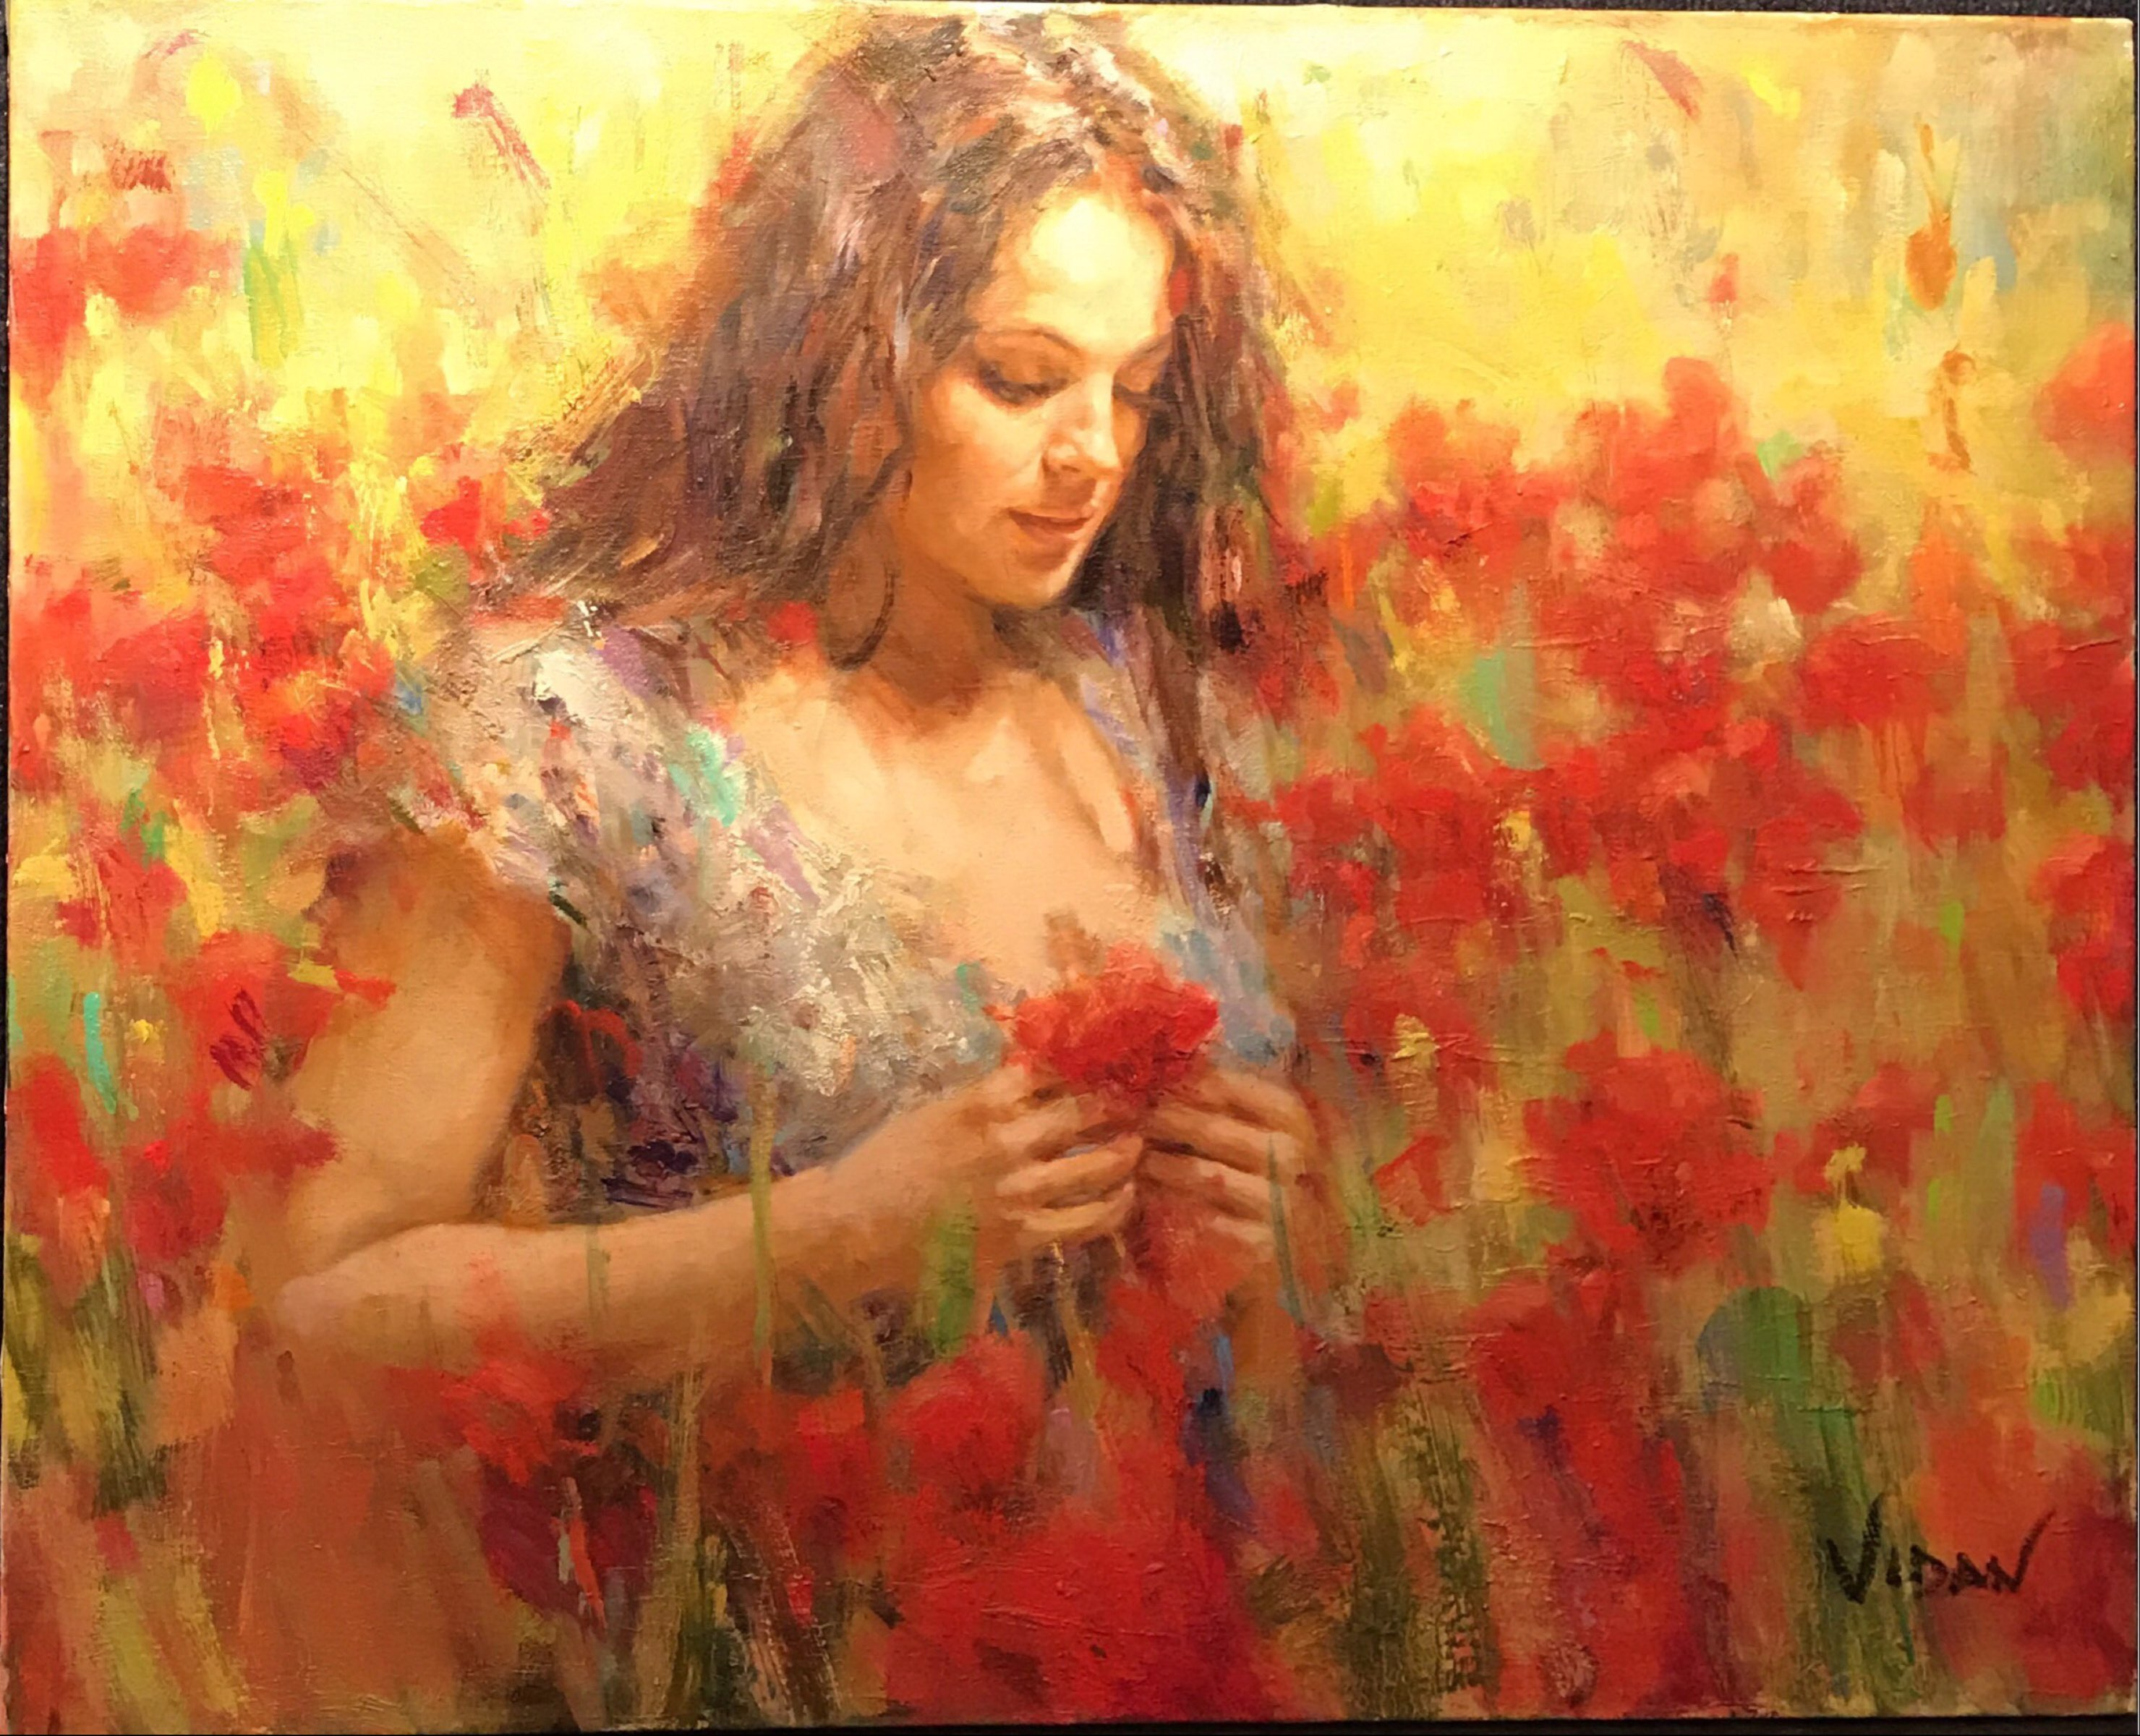 Lost In Poppies